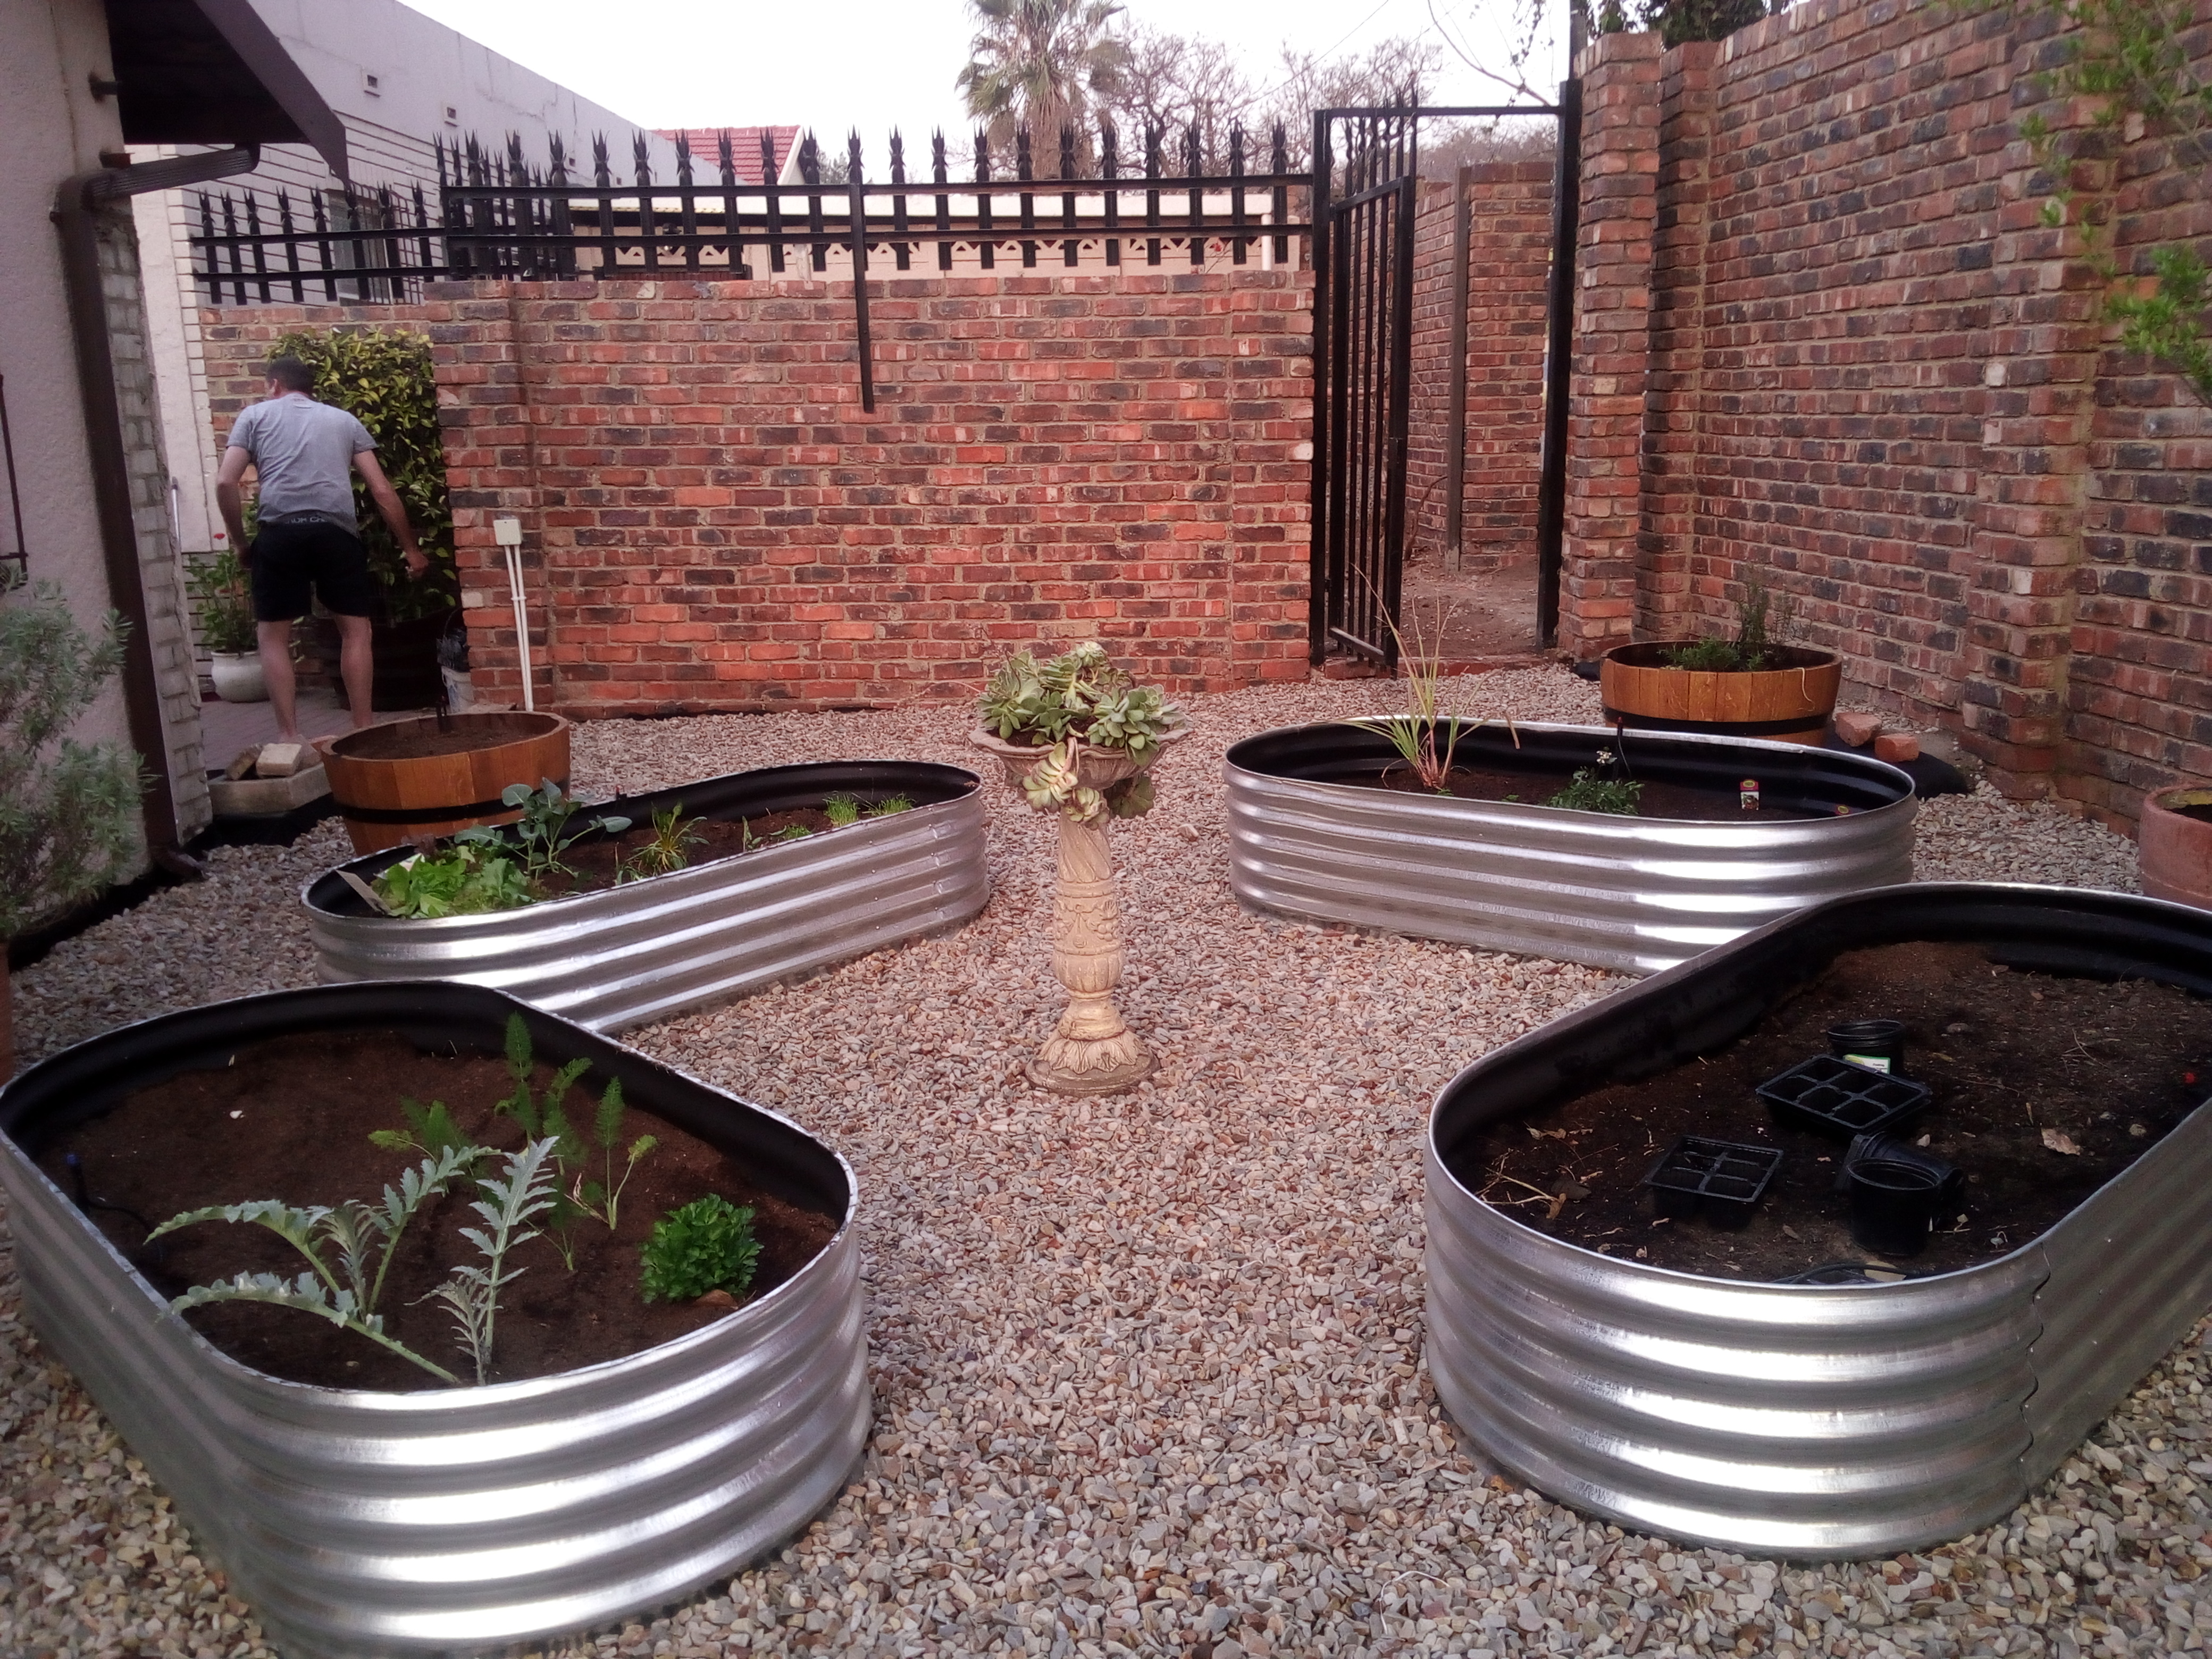 Landscaping With Zinc Planters